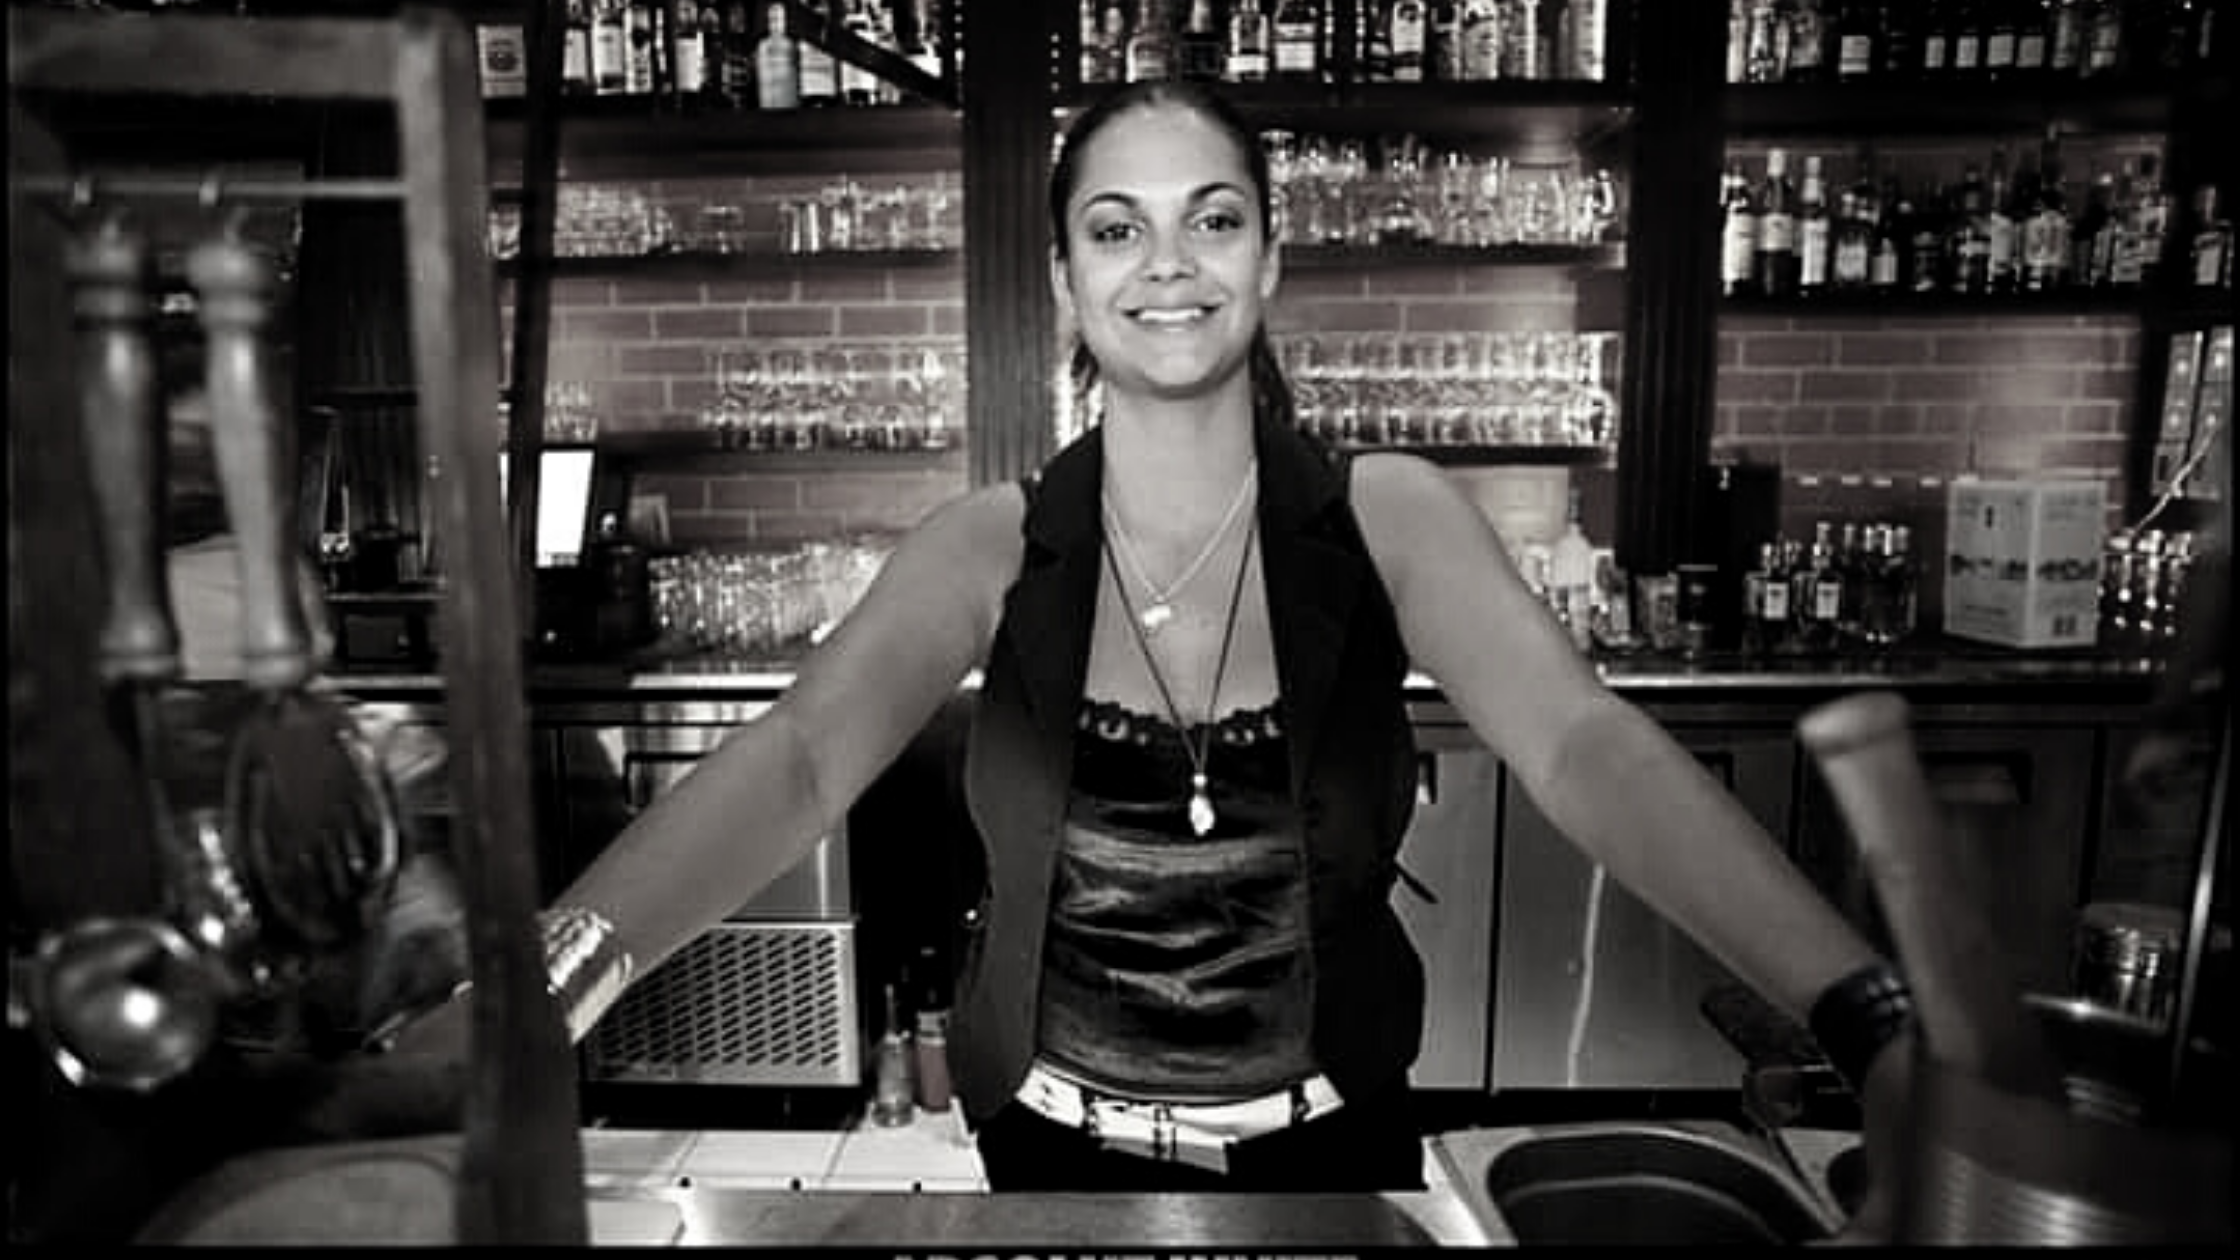 The Gritty Truth From Badass Female Mixologist photo